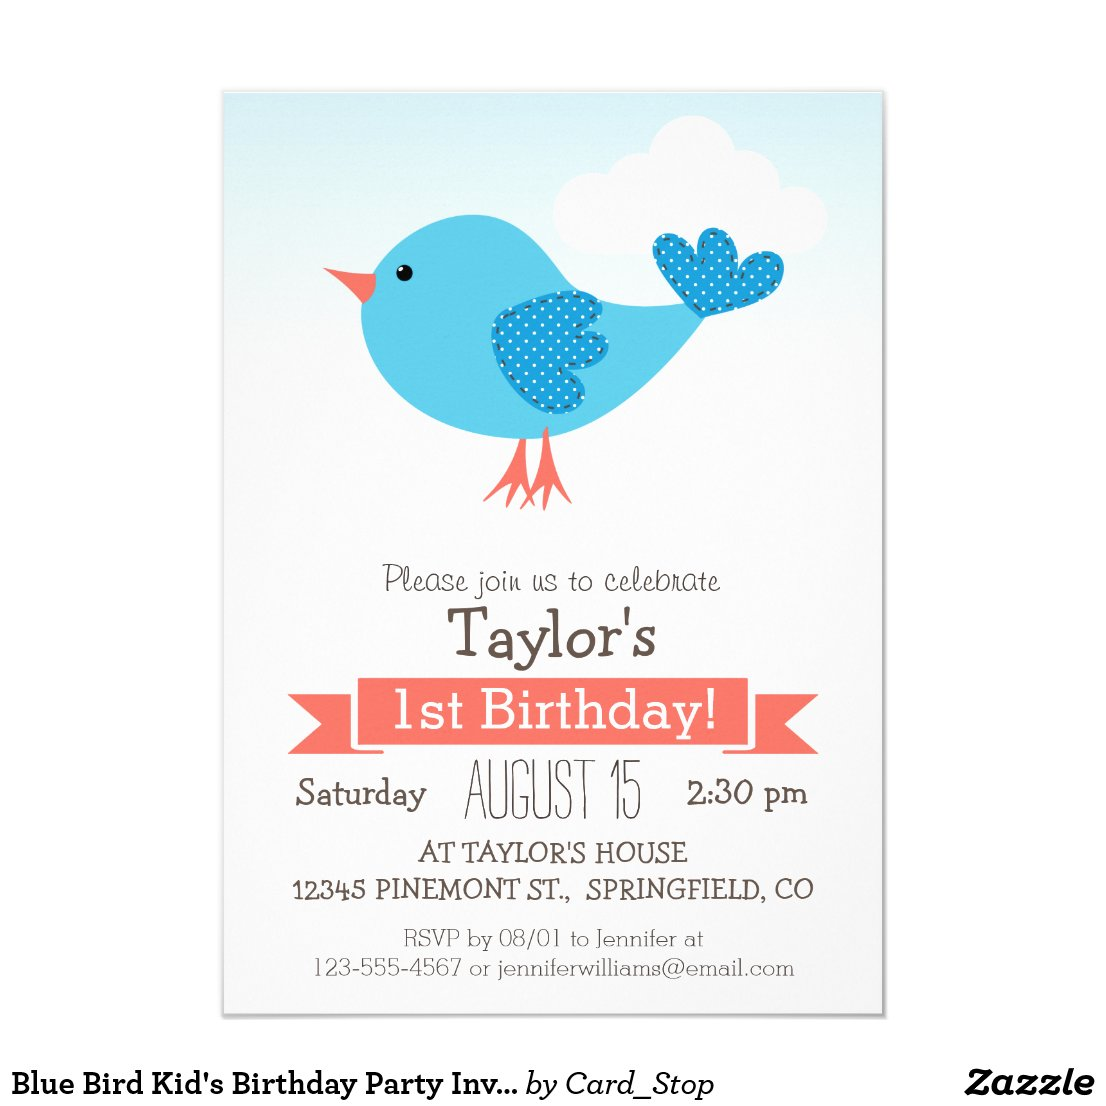 Blue Bird Kid's Birthday Party Invitation